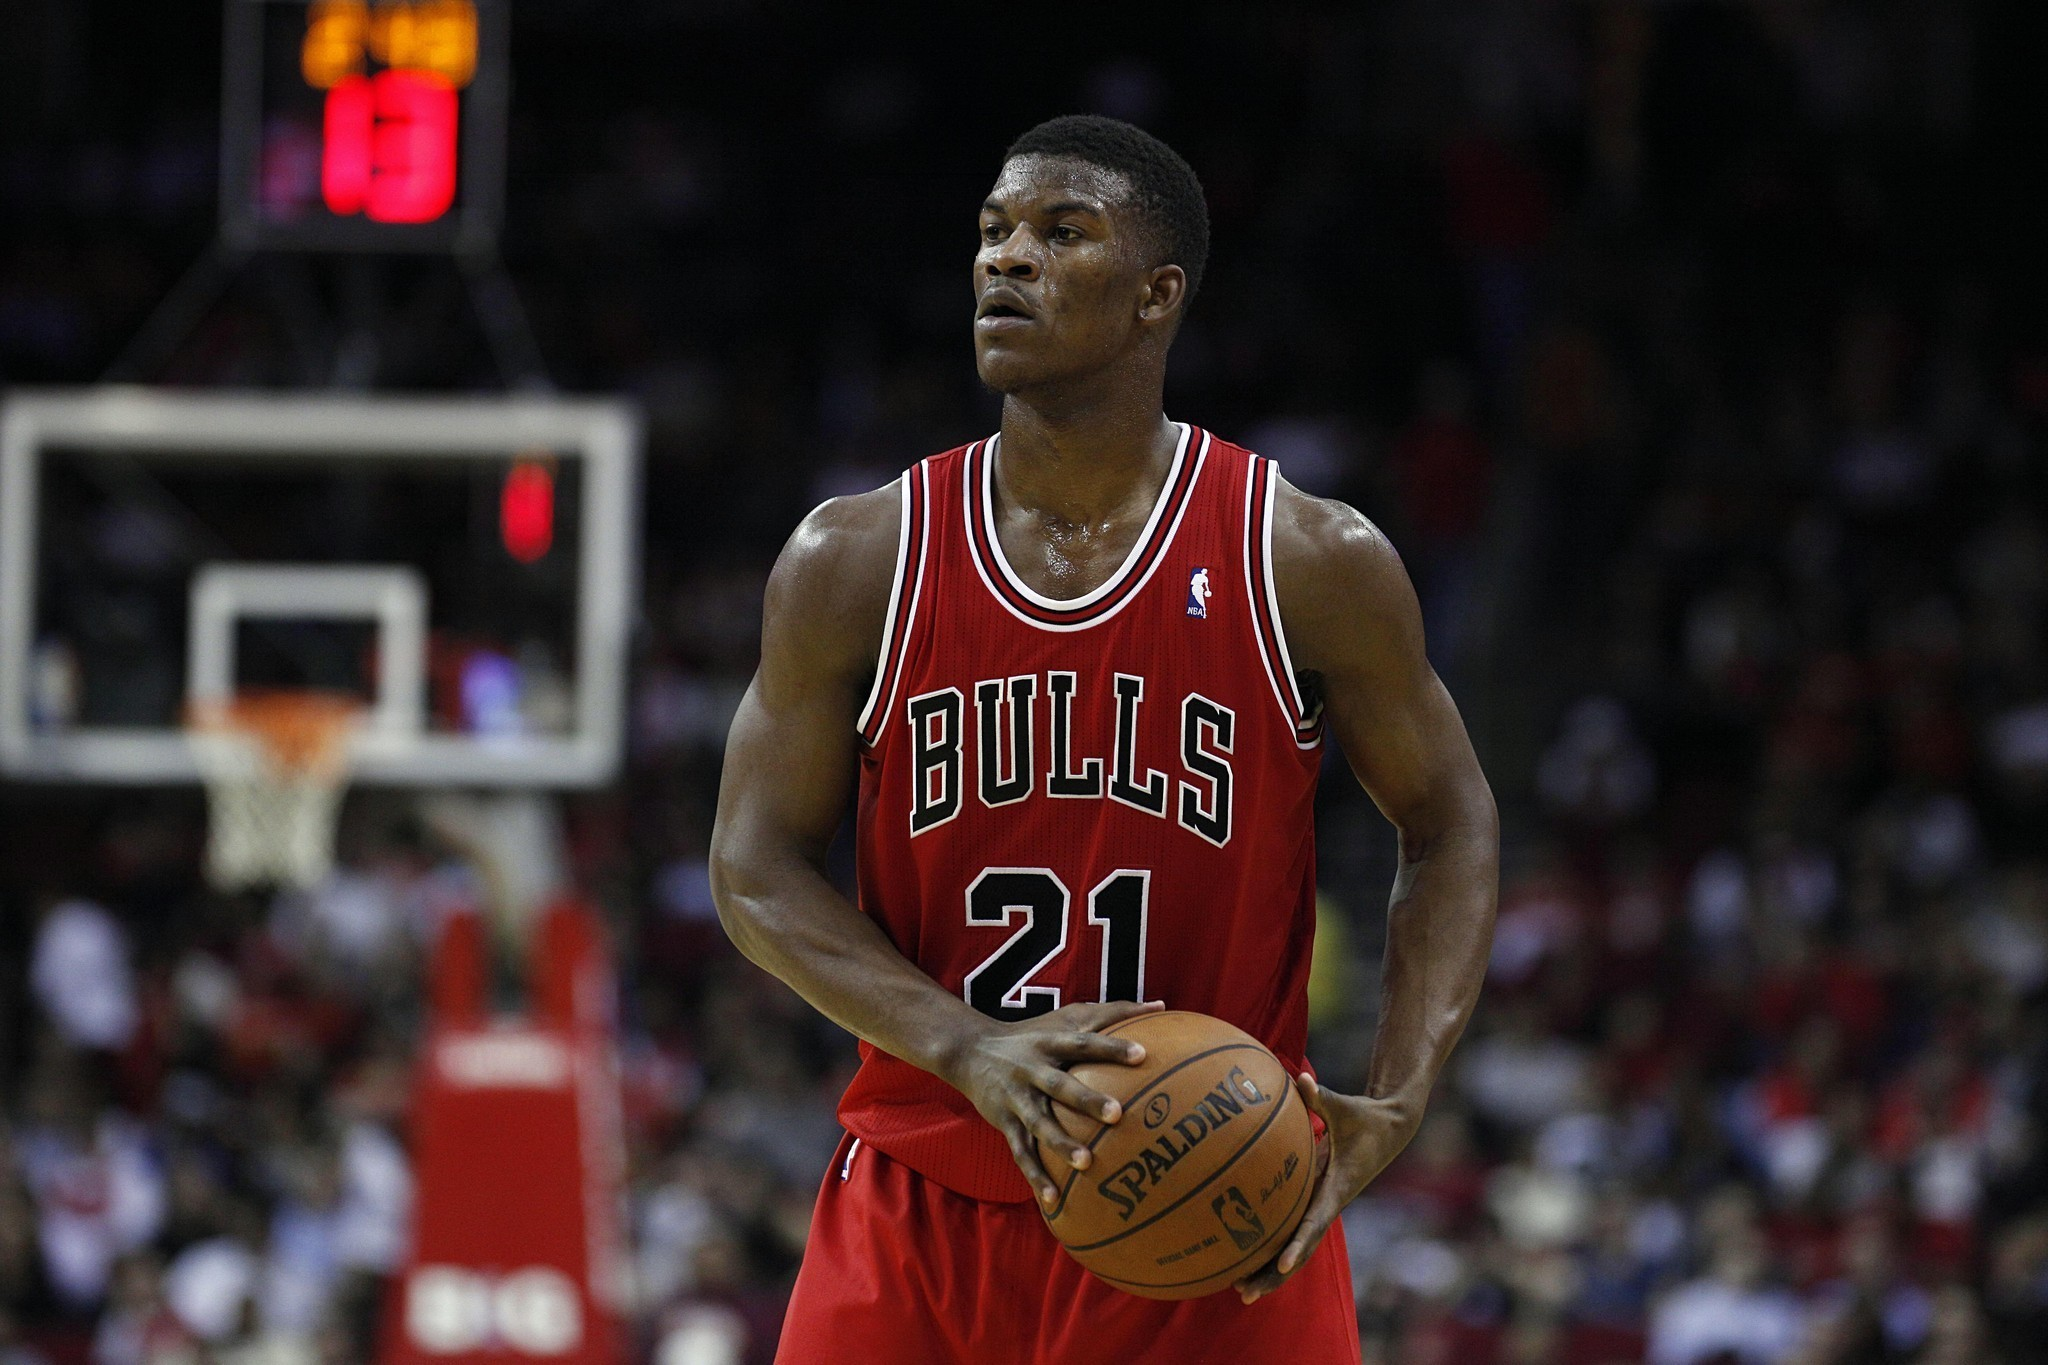 Butler plans on playing vs. Nets - Chicago Tribune